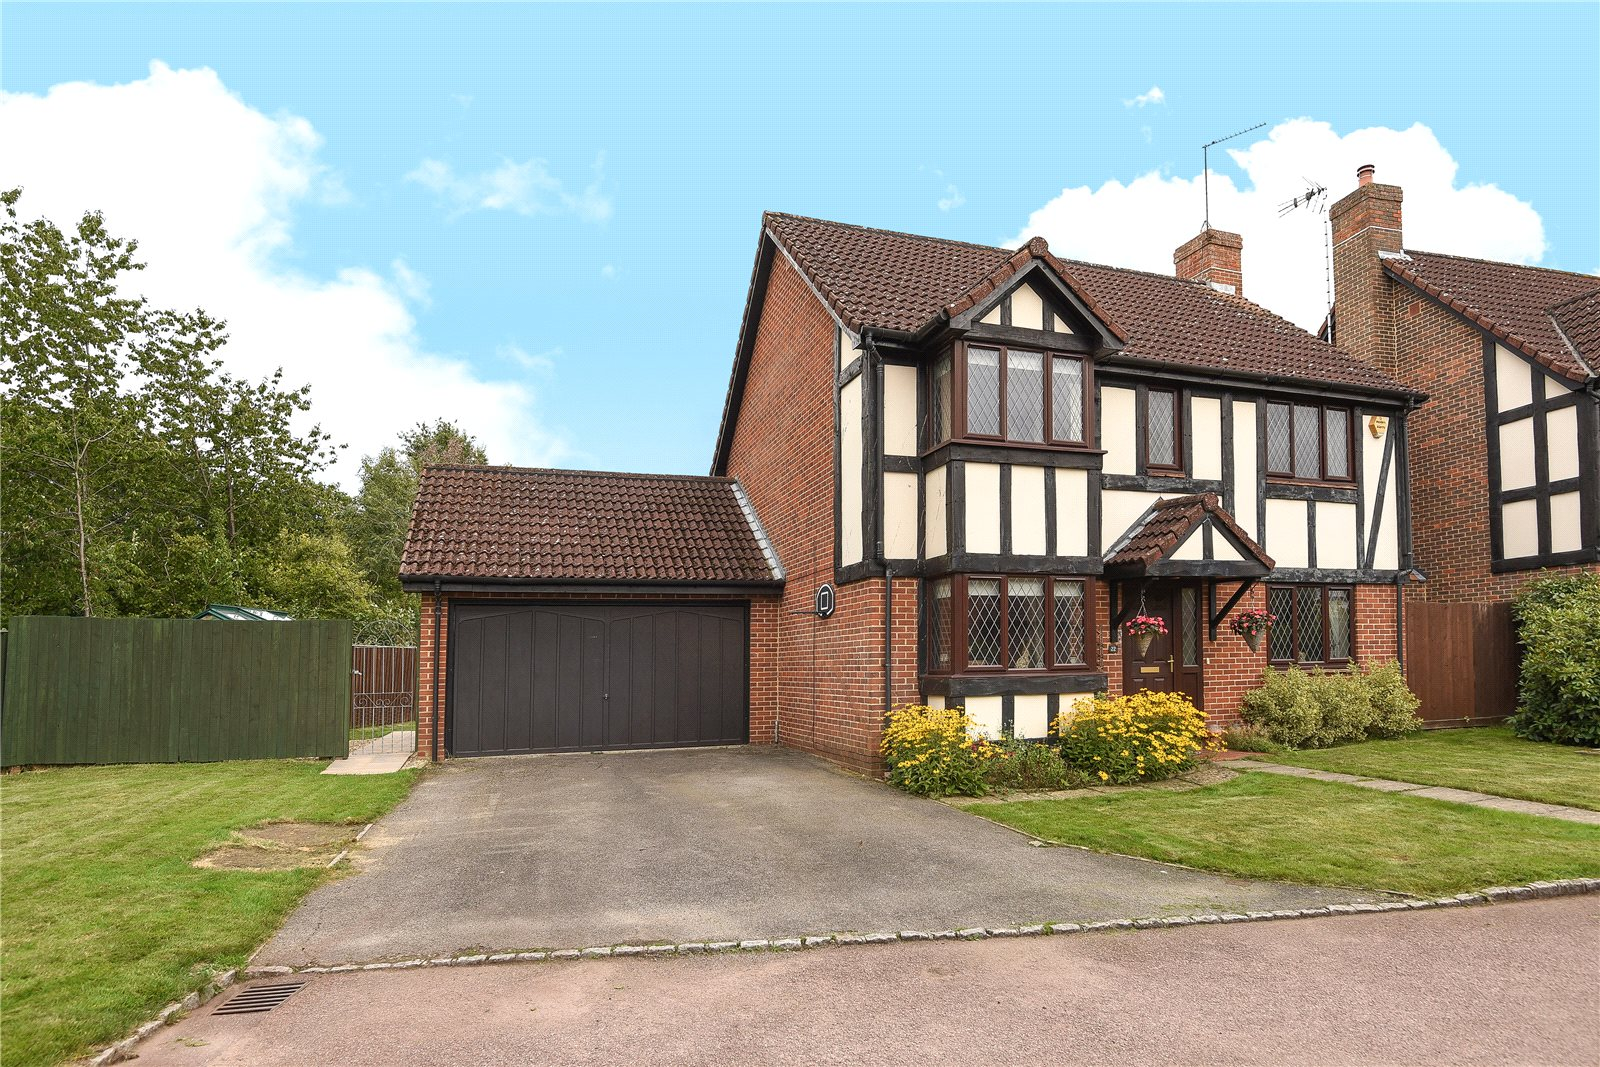 4 Bedrooms Detached House for sale in Woodward Close, Winnersh, Wokingham, Berkshire, RG41